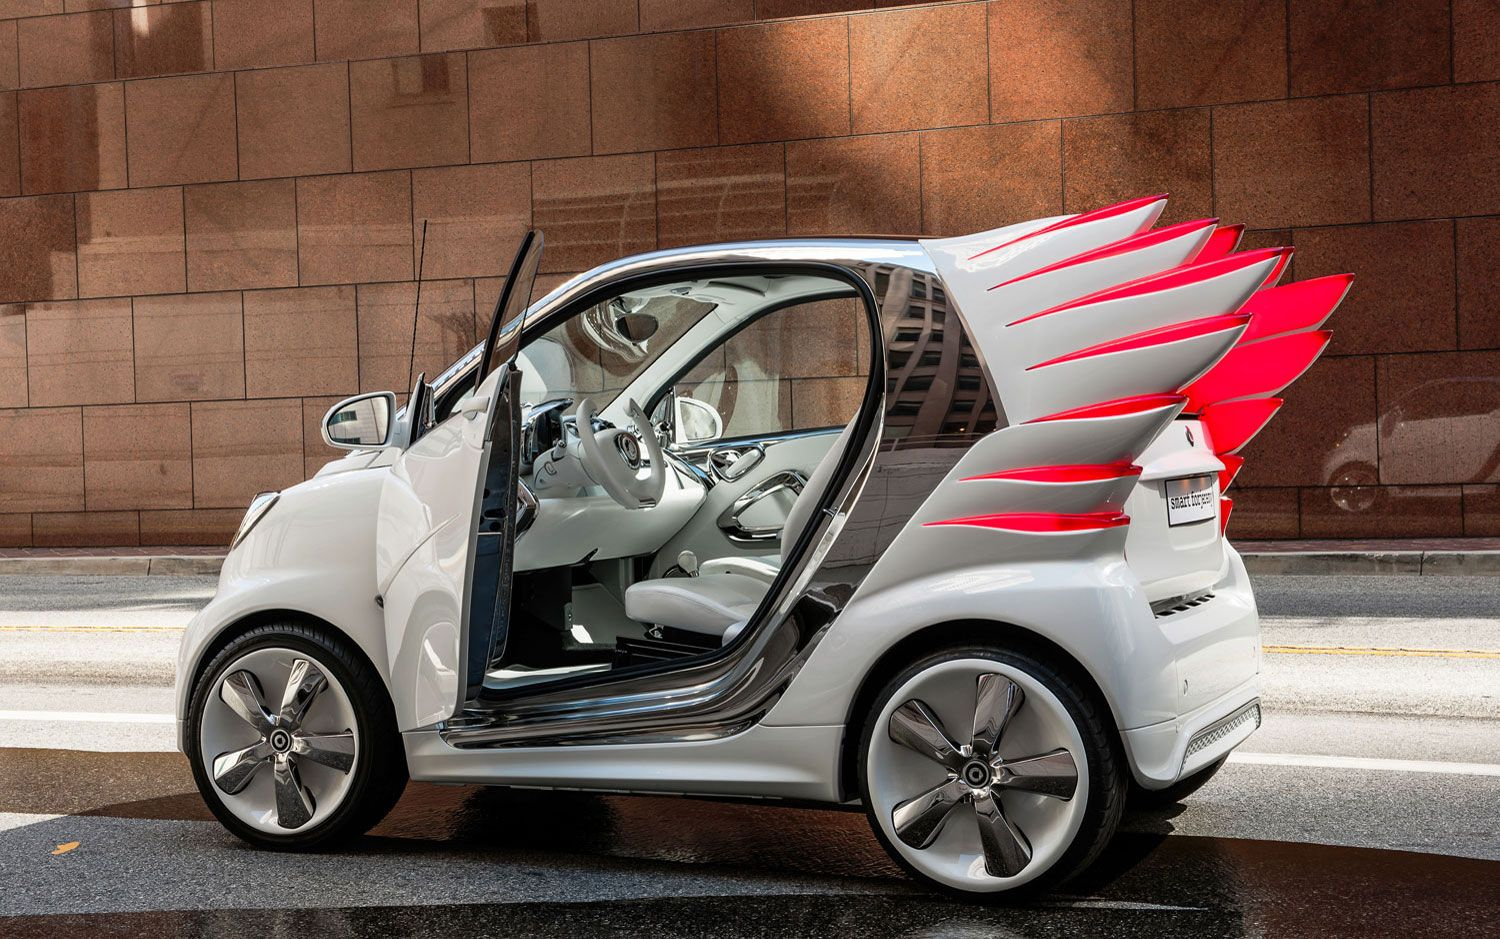 Coolest Smart Car Ever That S Just Awesome Pinterest Smart